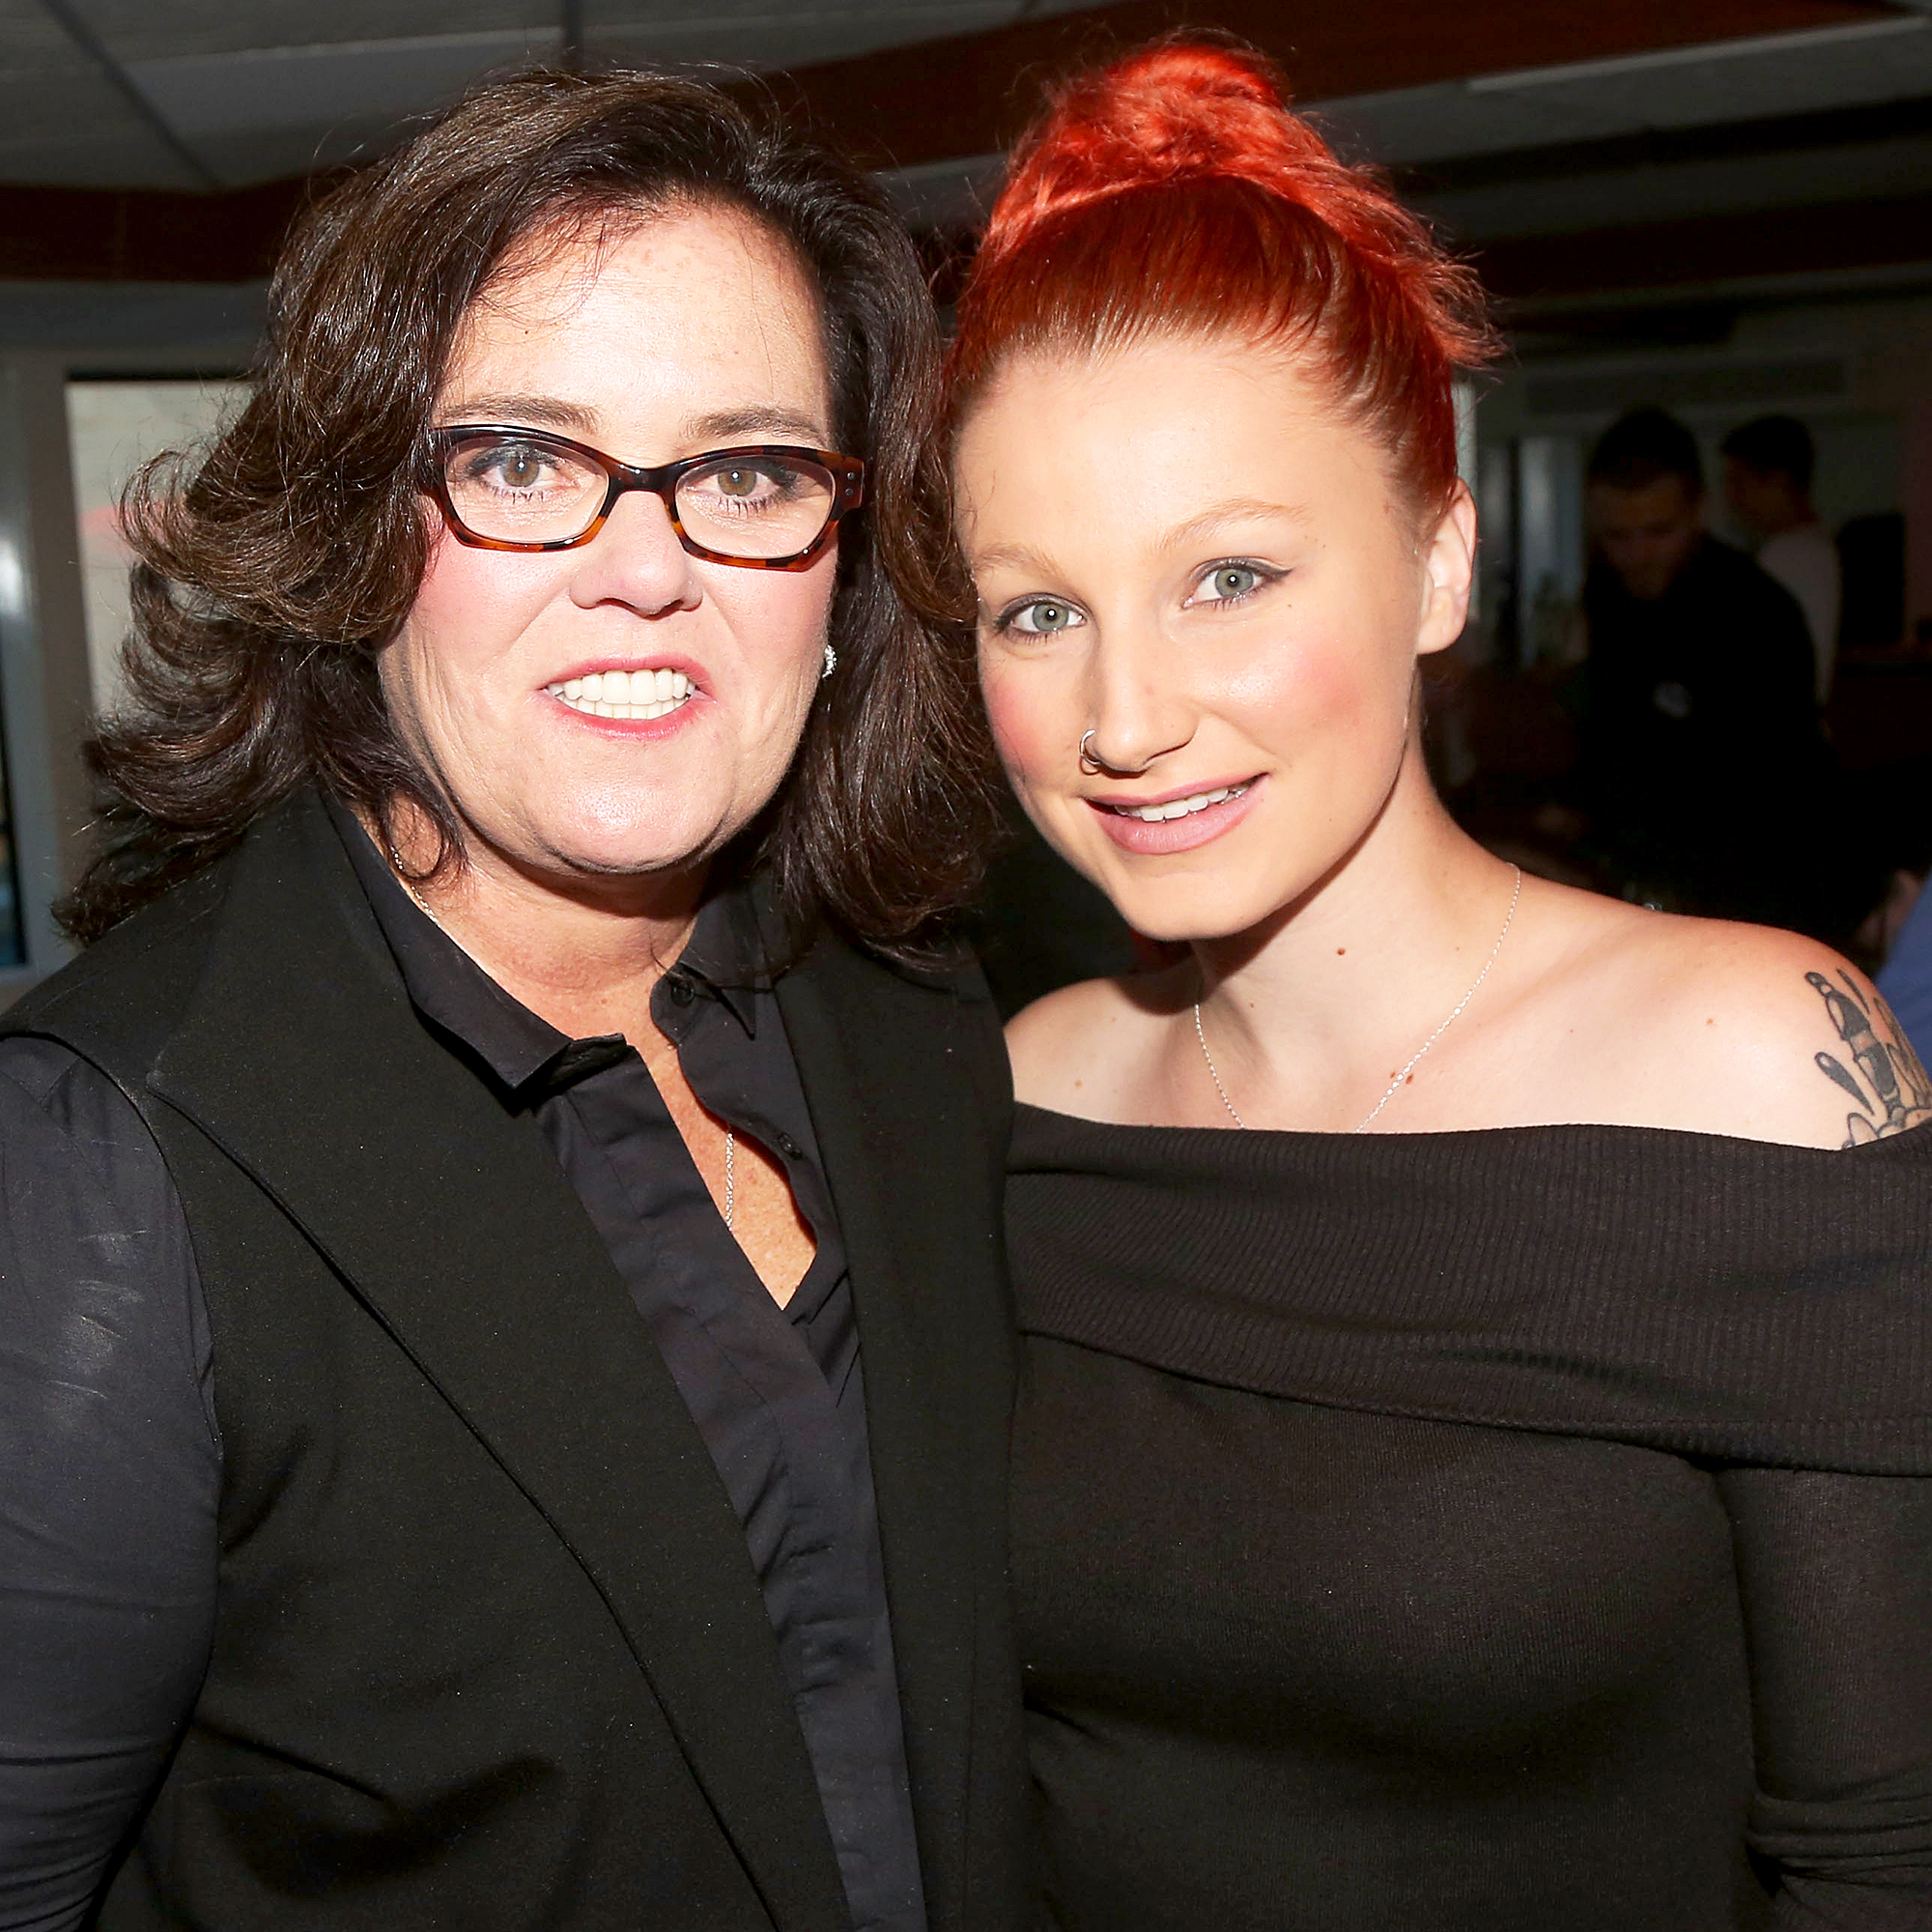 Rosie O'Donnell and Chelsea